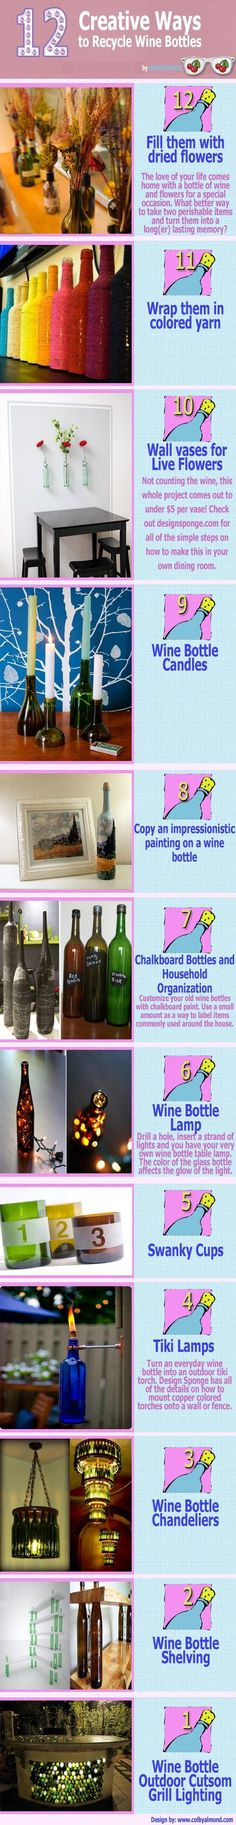 12 ways to recycle wine bottles